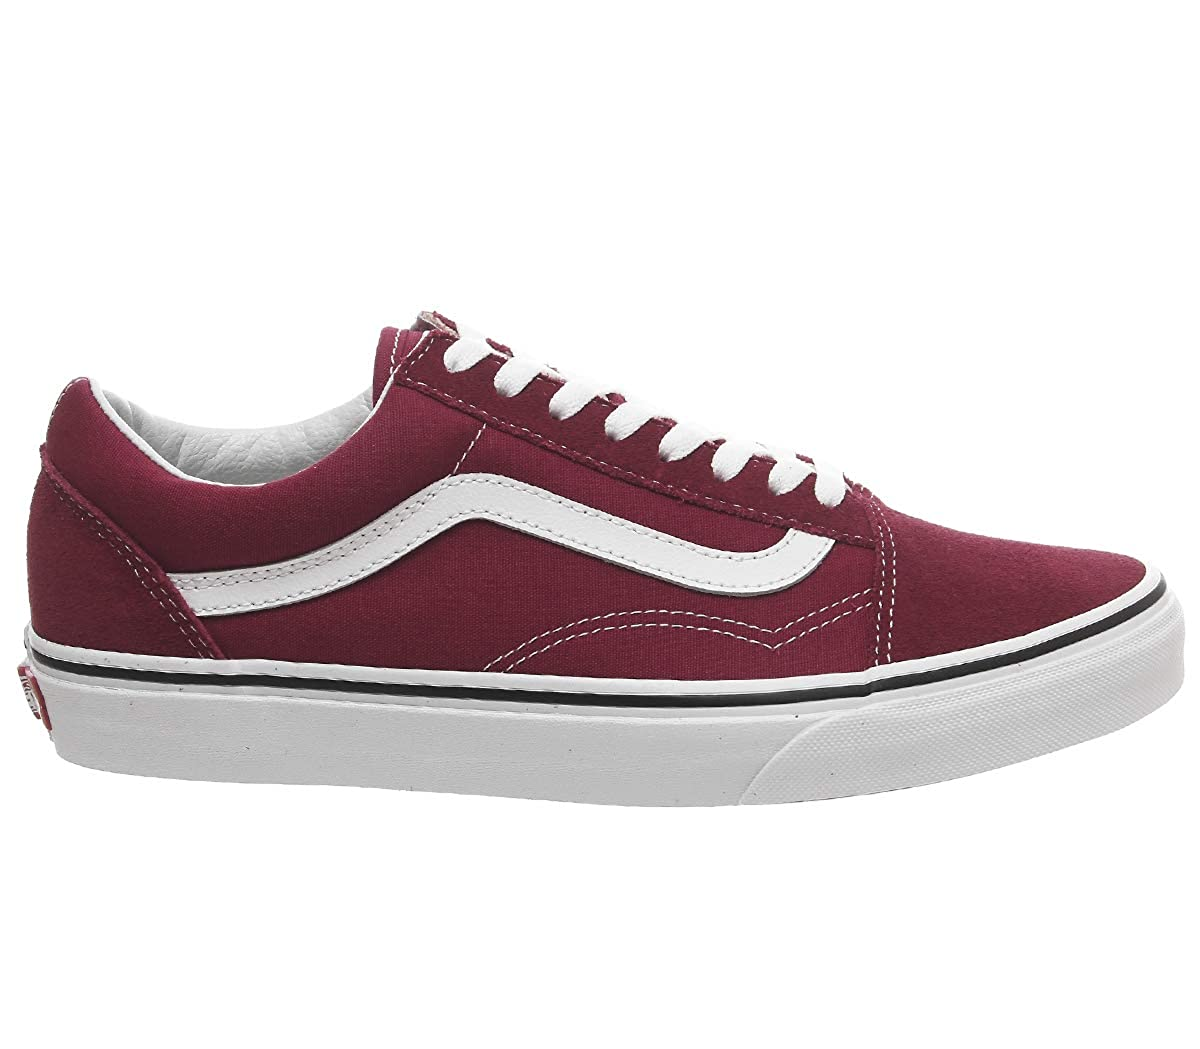 dab6fb85d7 Vans Old Skool